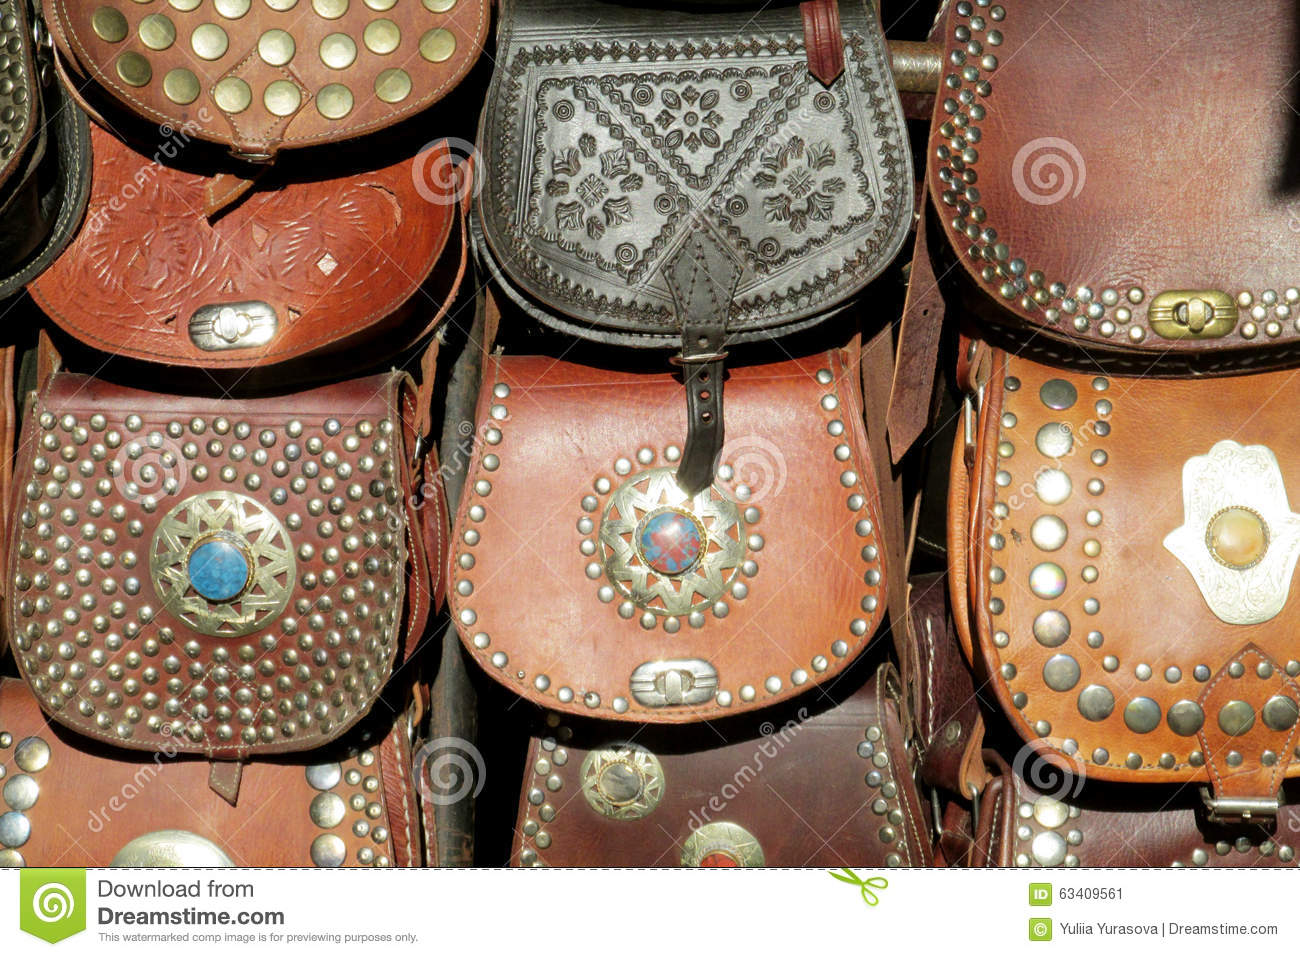 Leather Bags Souvenirs Stock Photo Image 63409561